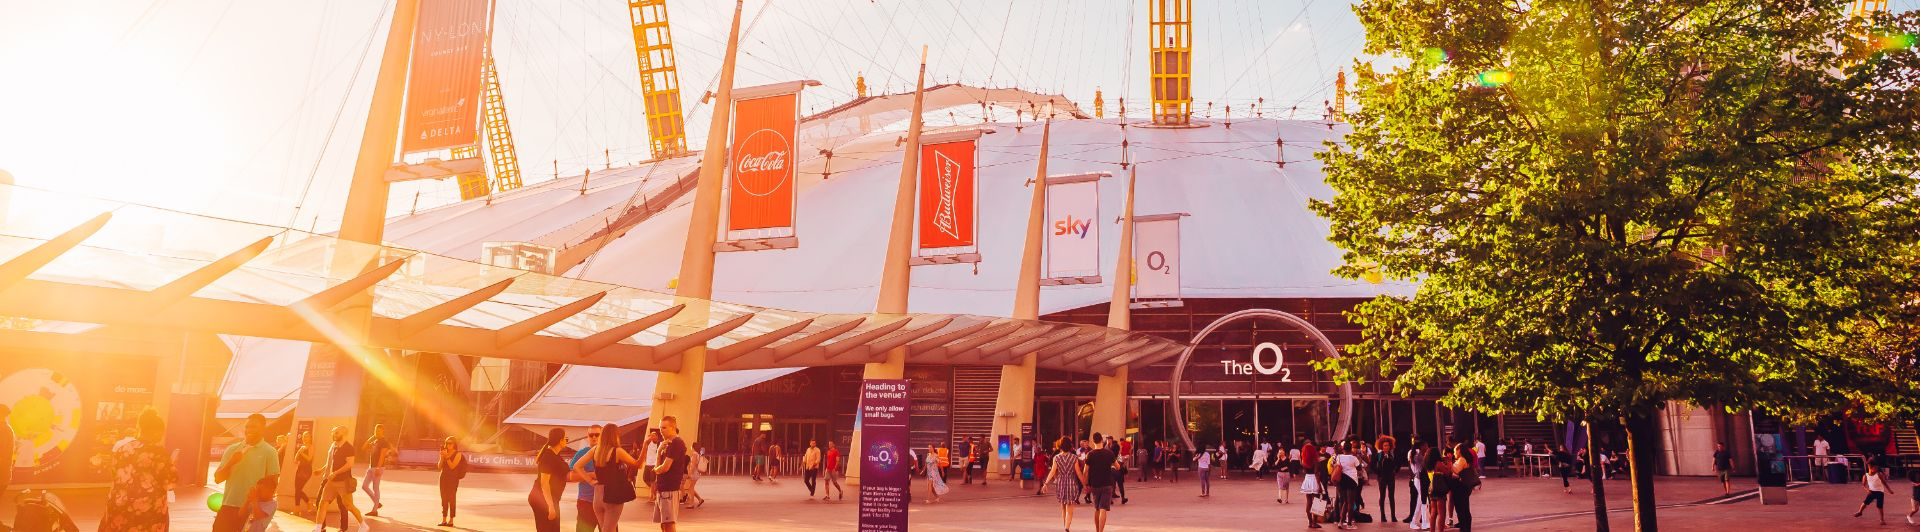 Getting to The O2 | The O2